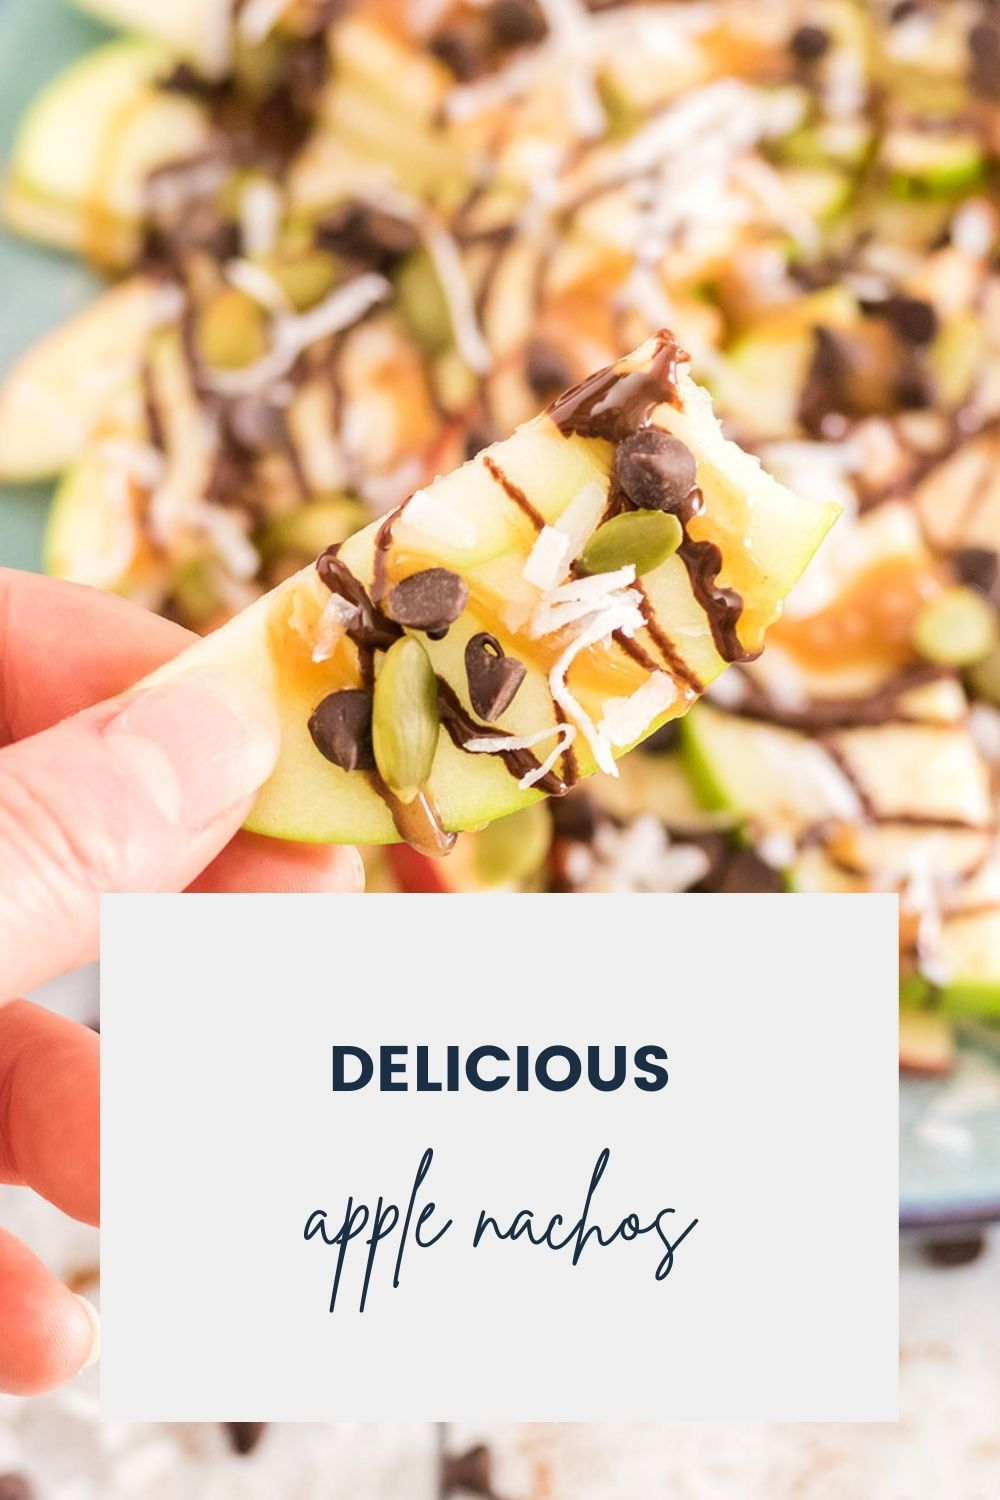 Slices of apples with drizzles of caramel and chocolate sauce and other toppings.